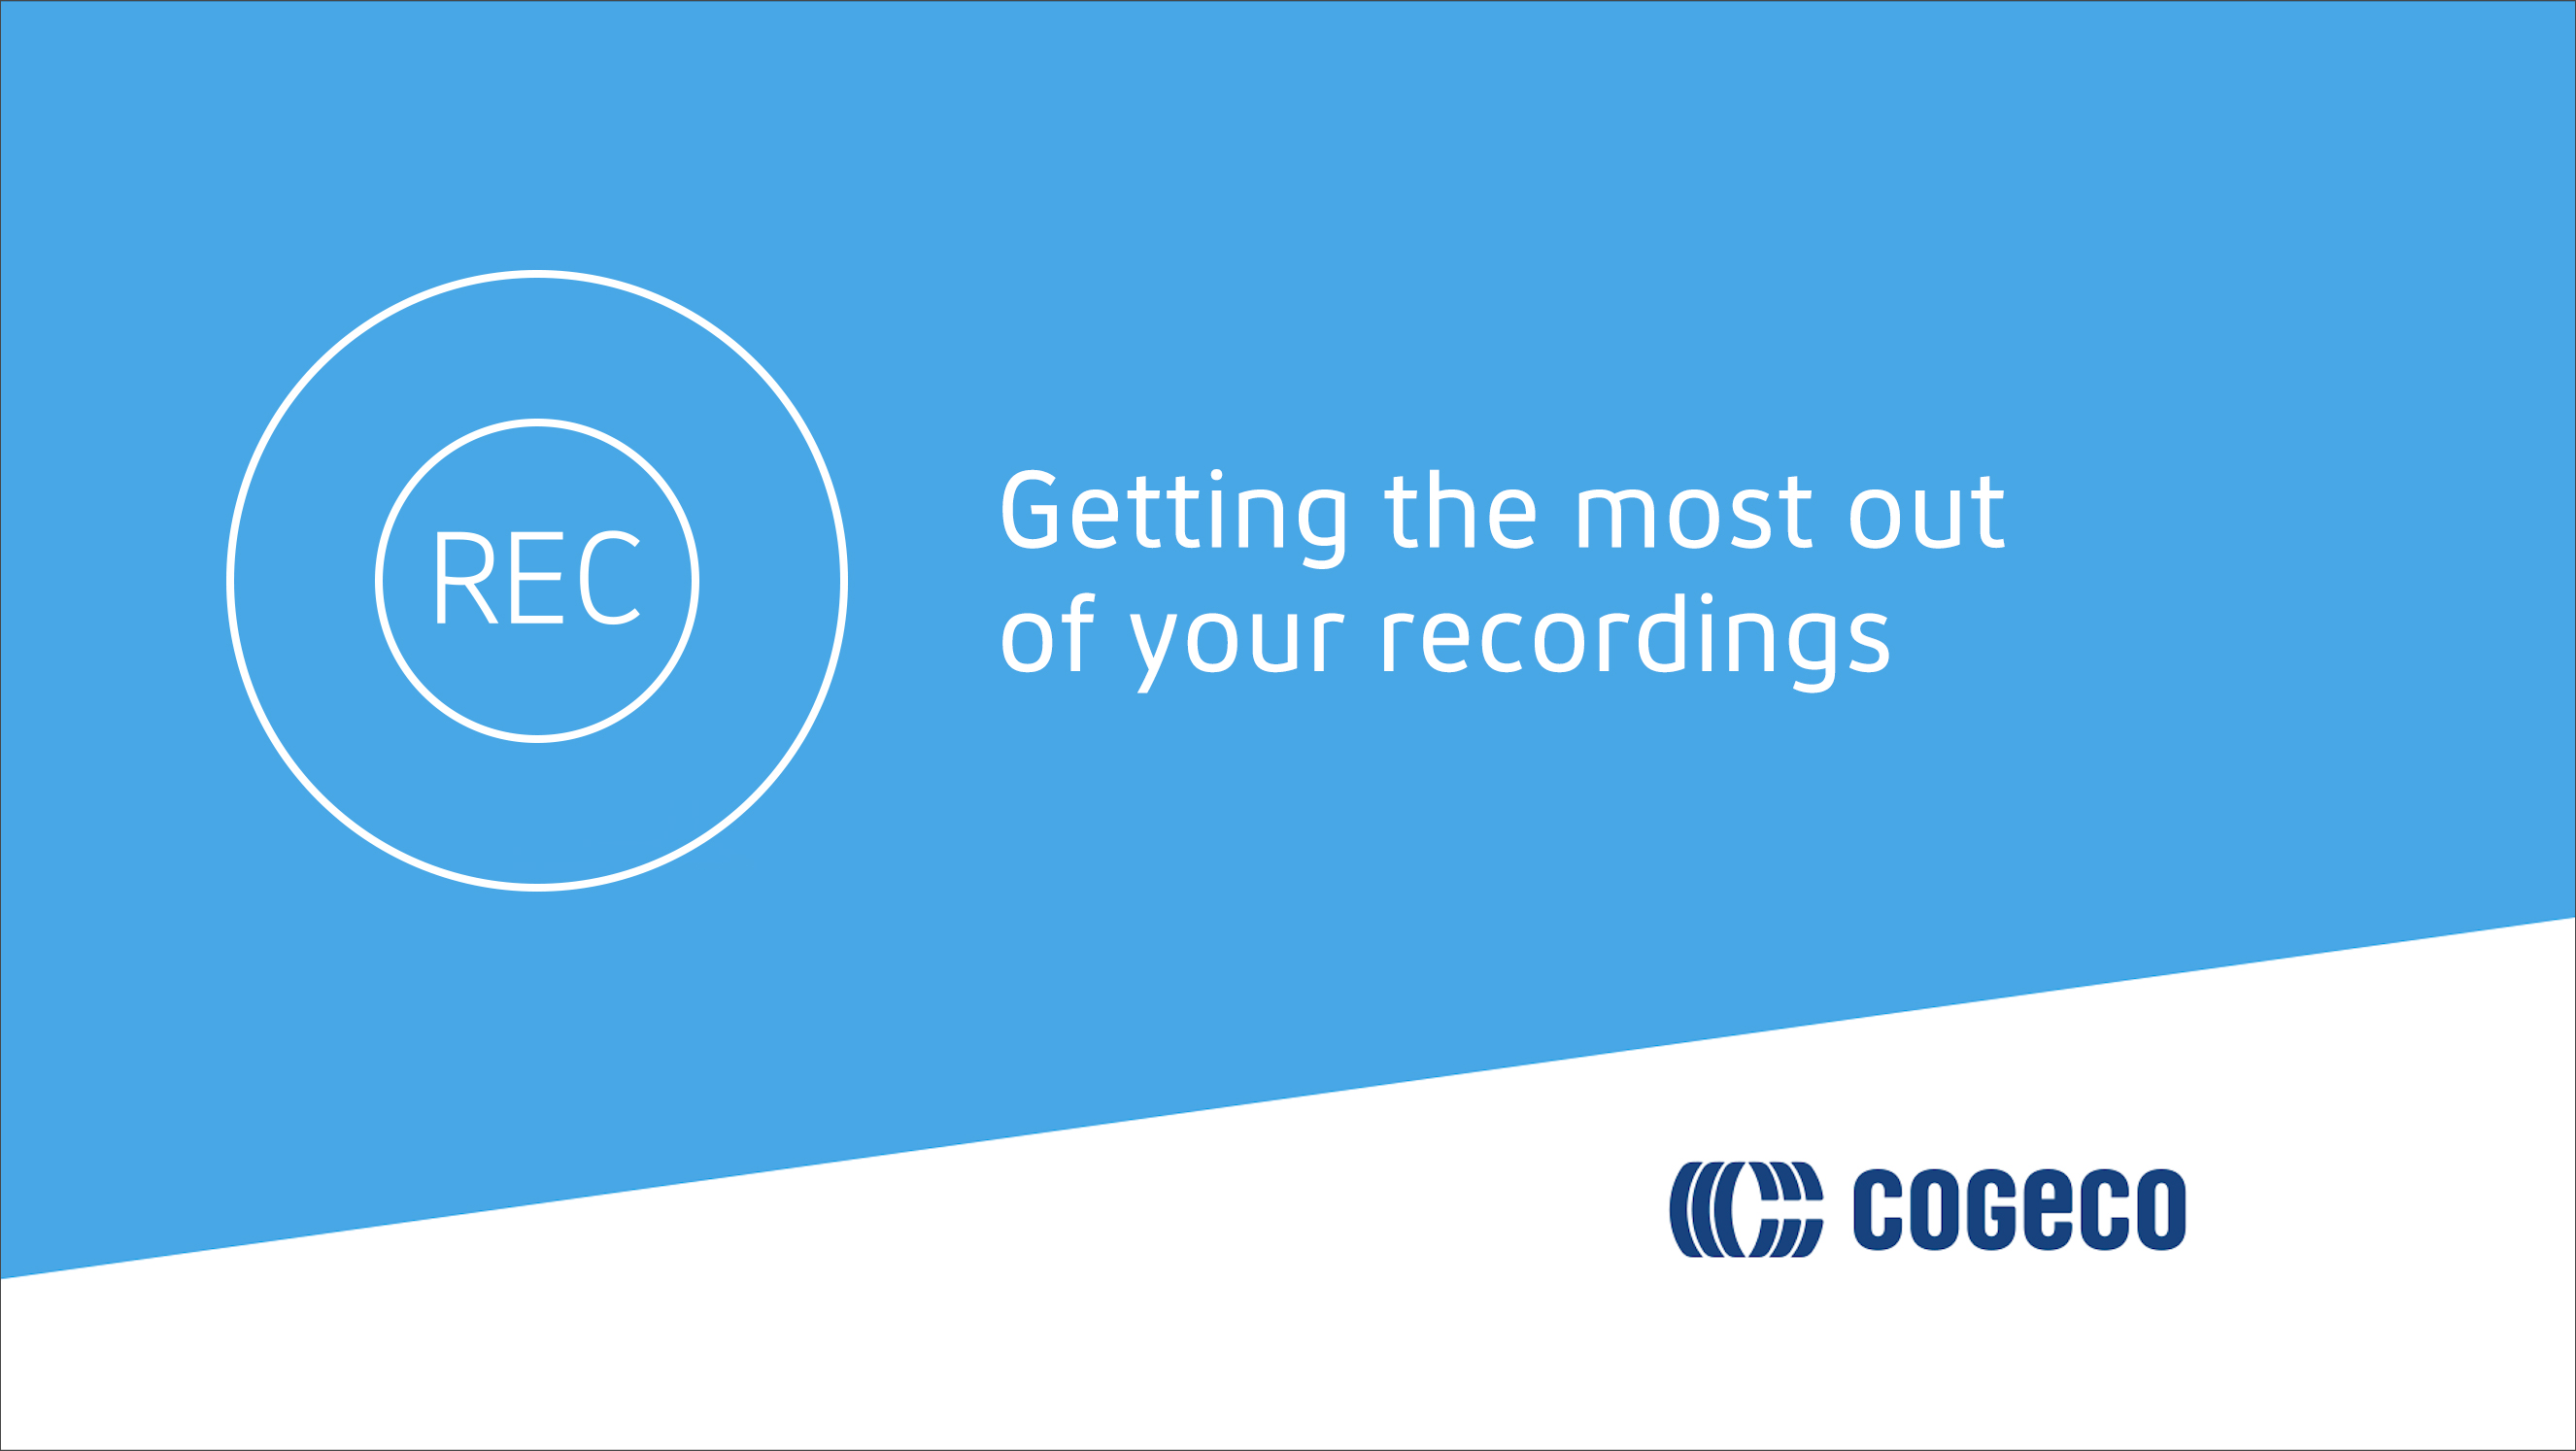 Get the most out of your recordings